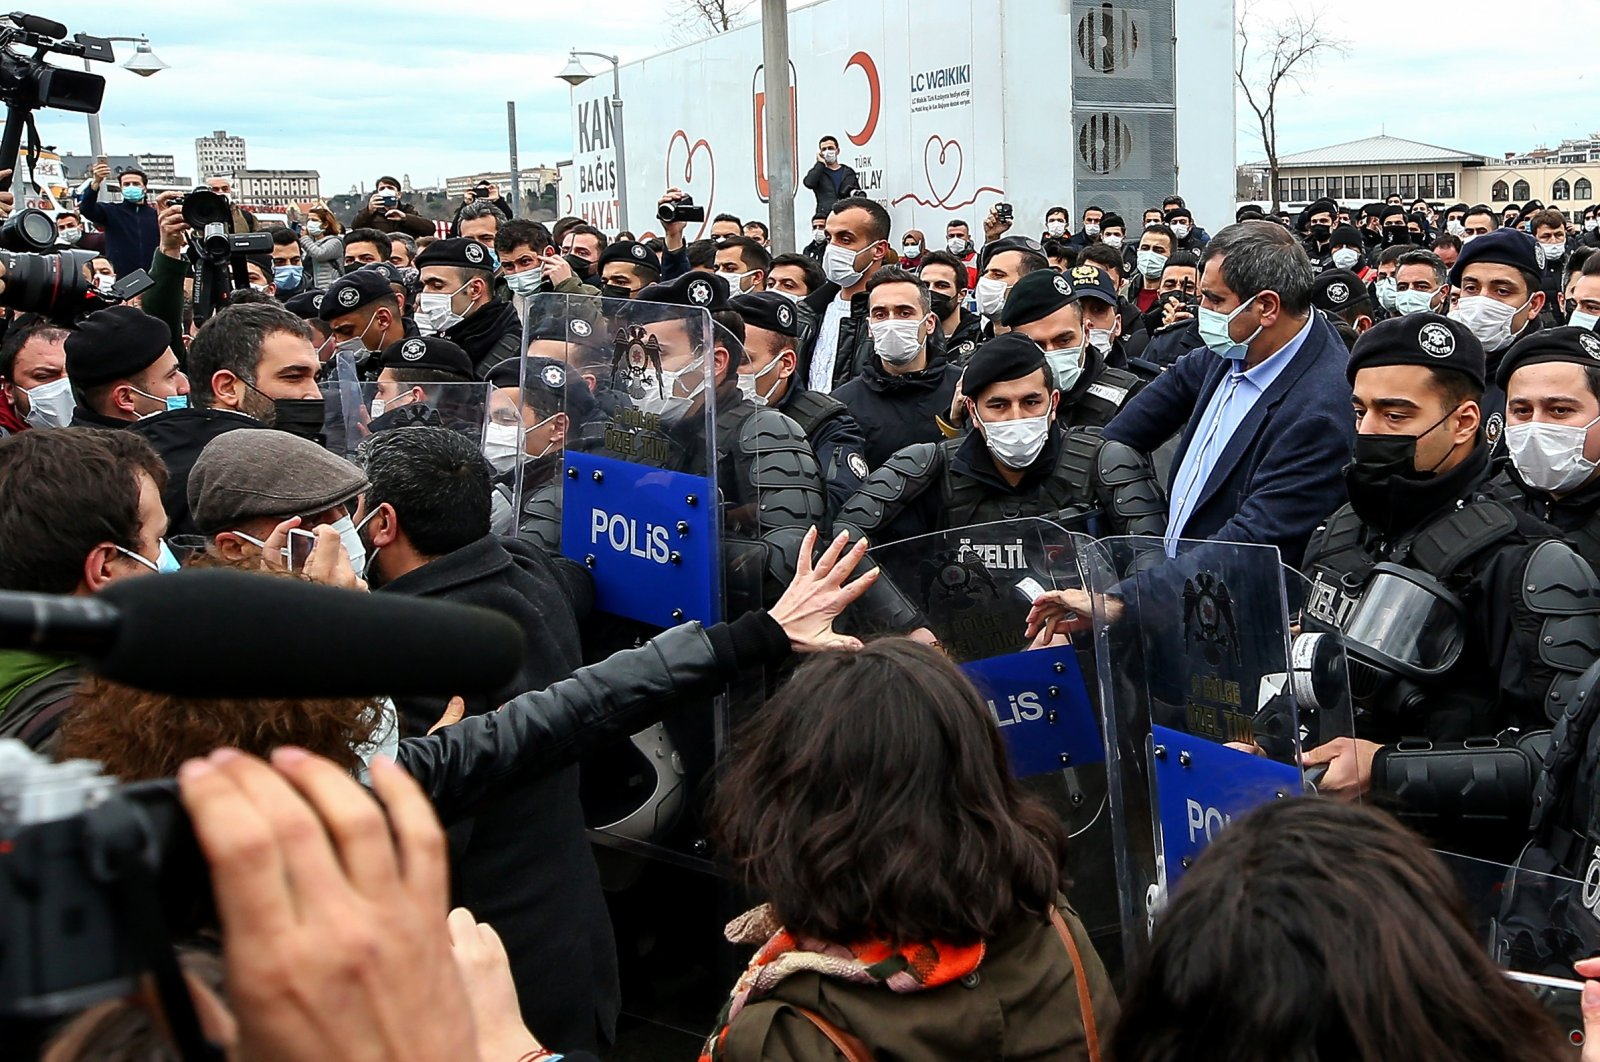 Police confront the rioting crowd protesting the arrests in earlier protests against the new Boğaziçi University rector, in Kadıköy district, in Istanbul, Turkey, Feb. 2, 2021. (AA Photo)